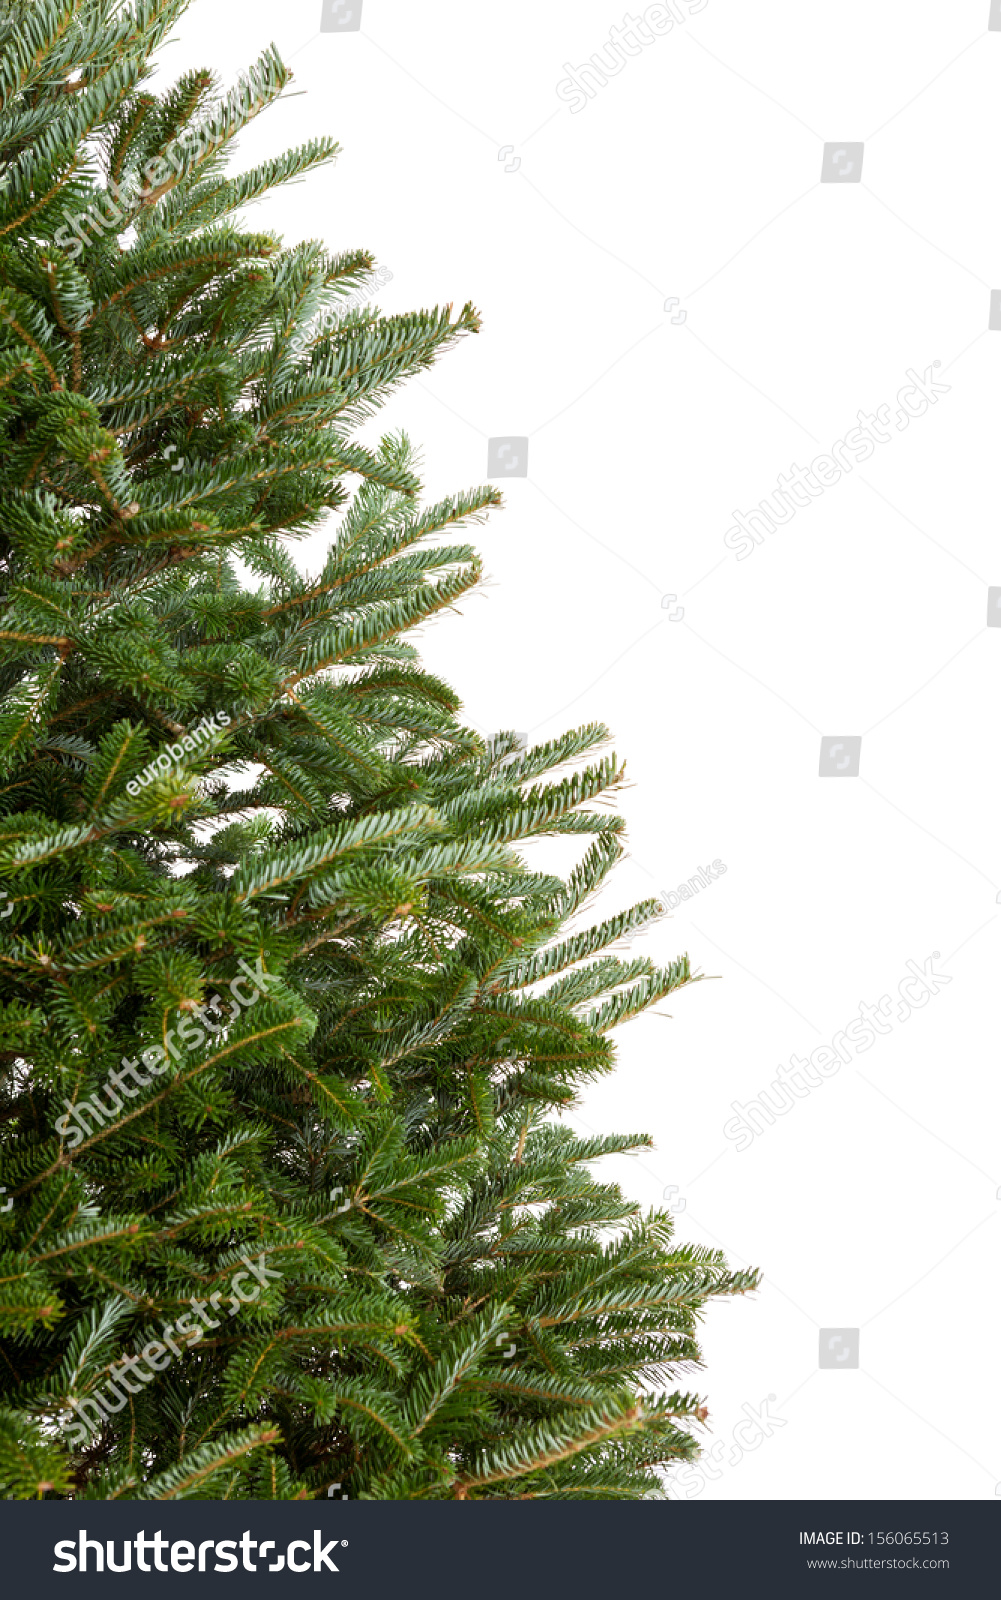 Closeup Of Part A Real Evergreen Christmas Tree With No Decorations Isolated On White Background